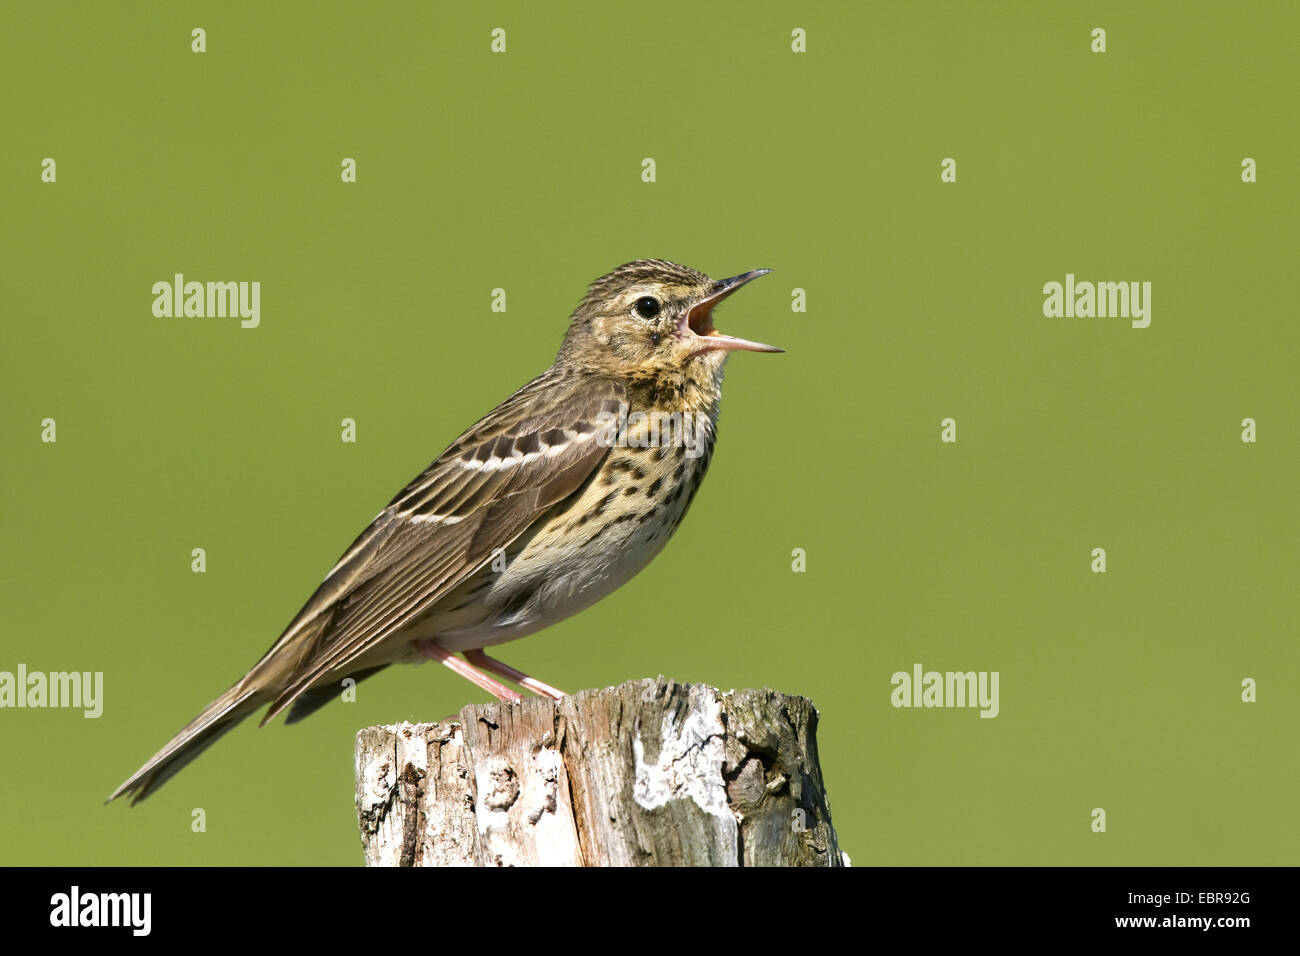 Tree pitpit (Anthus trivialis), sings on a wooden post, Austria, Neusiedler See National Park - Stock Image